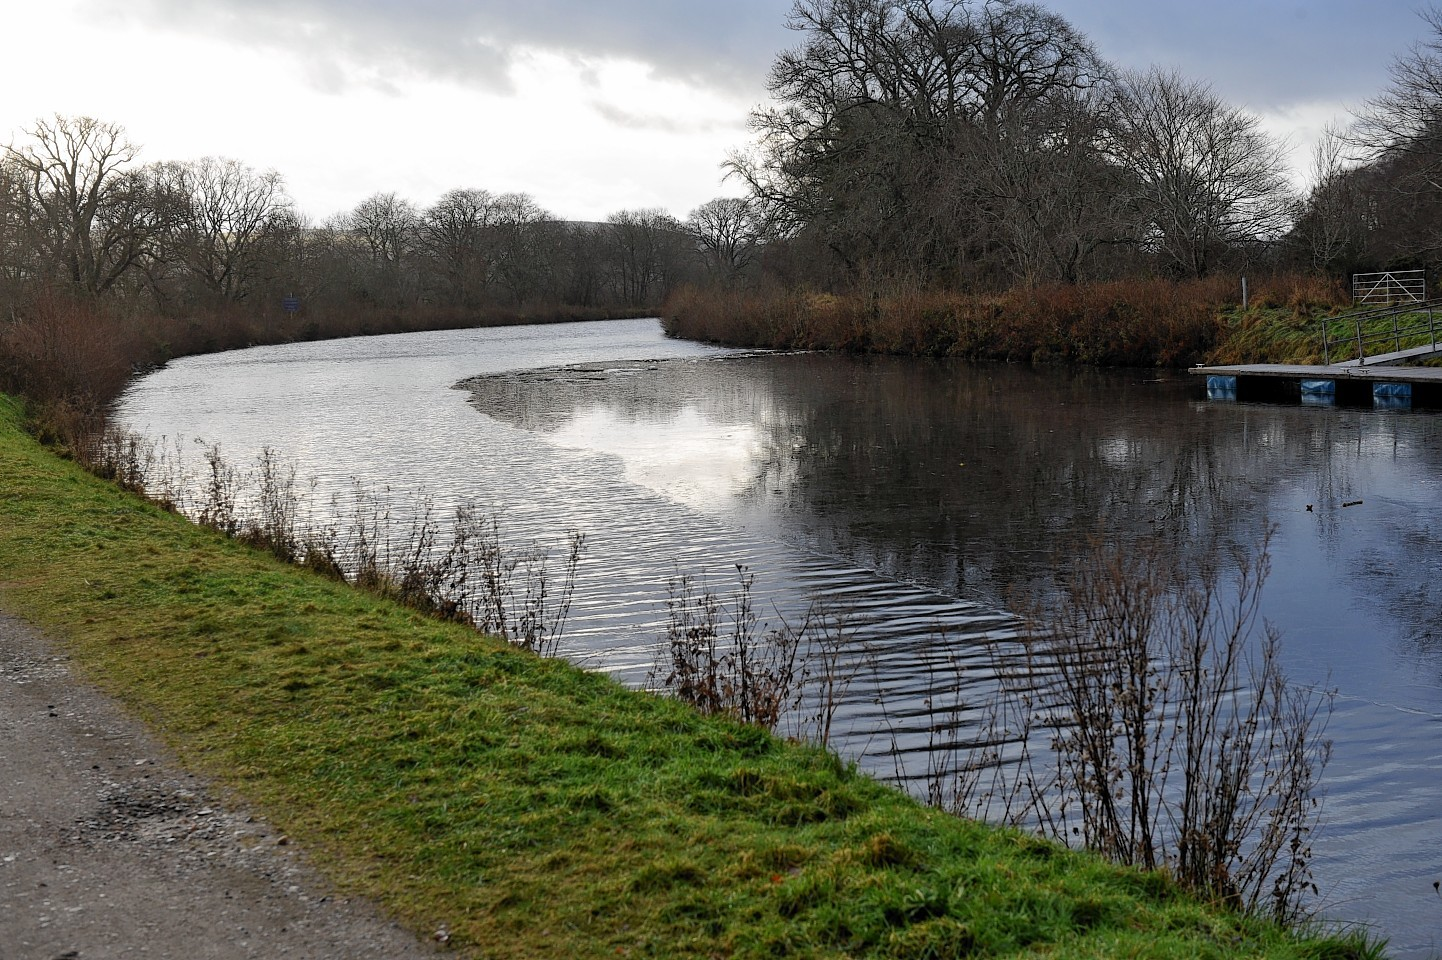 The conference will take place near the Caledonian Canal